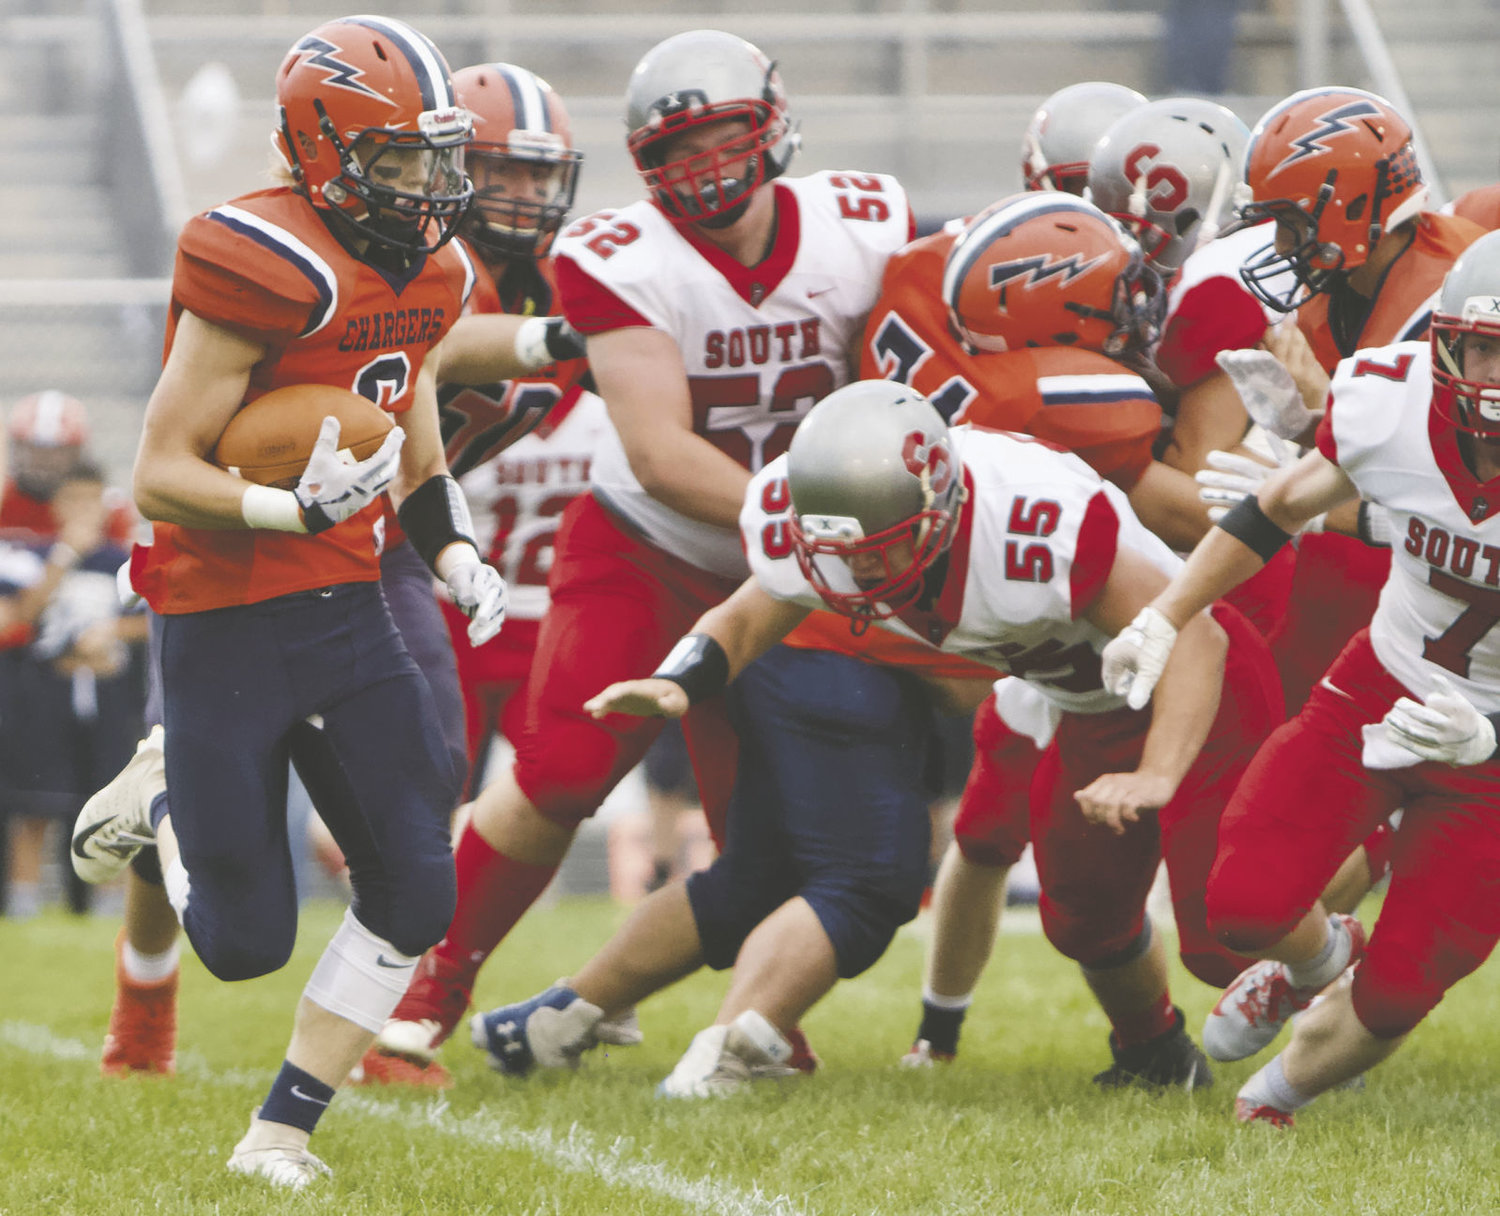 North Montgomery's Zach Waldon runs against Southmont last week.